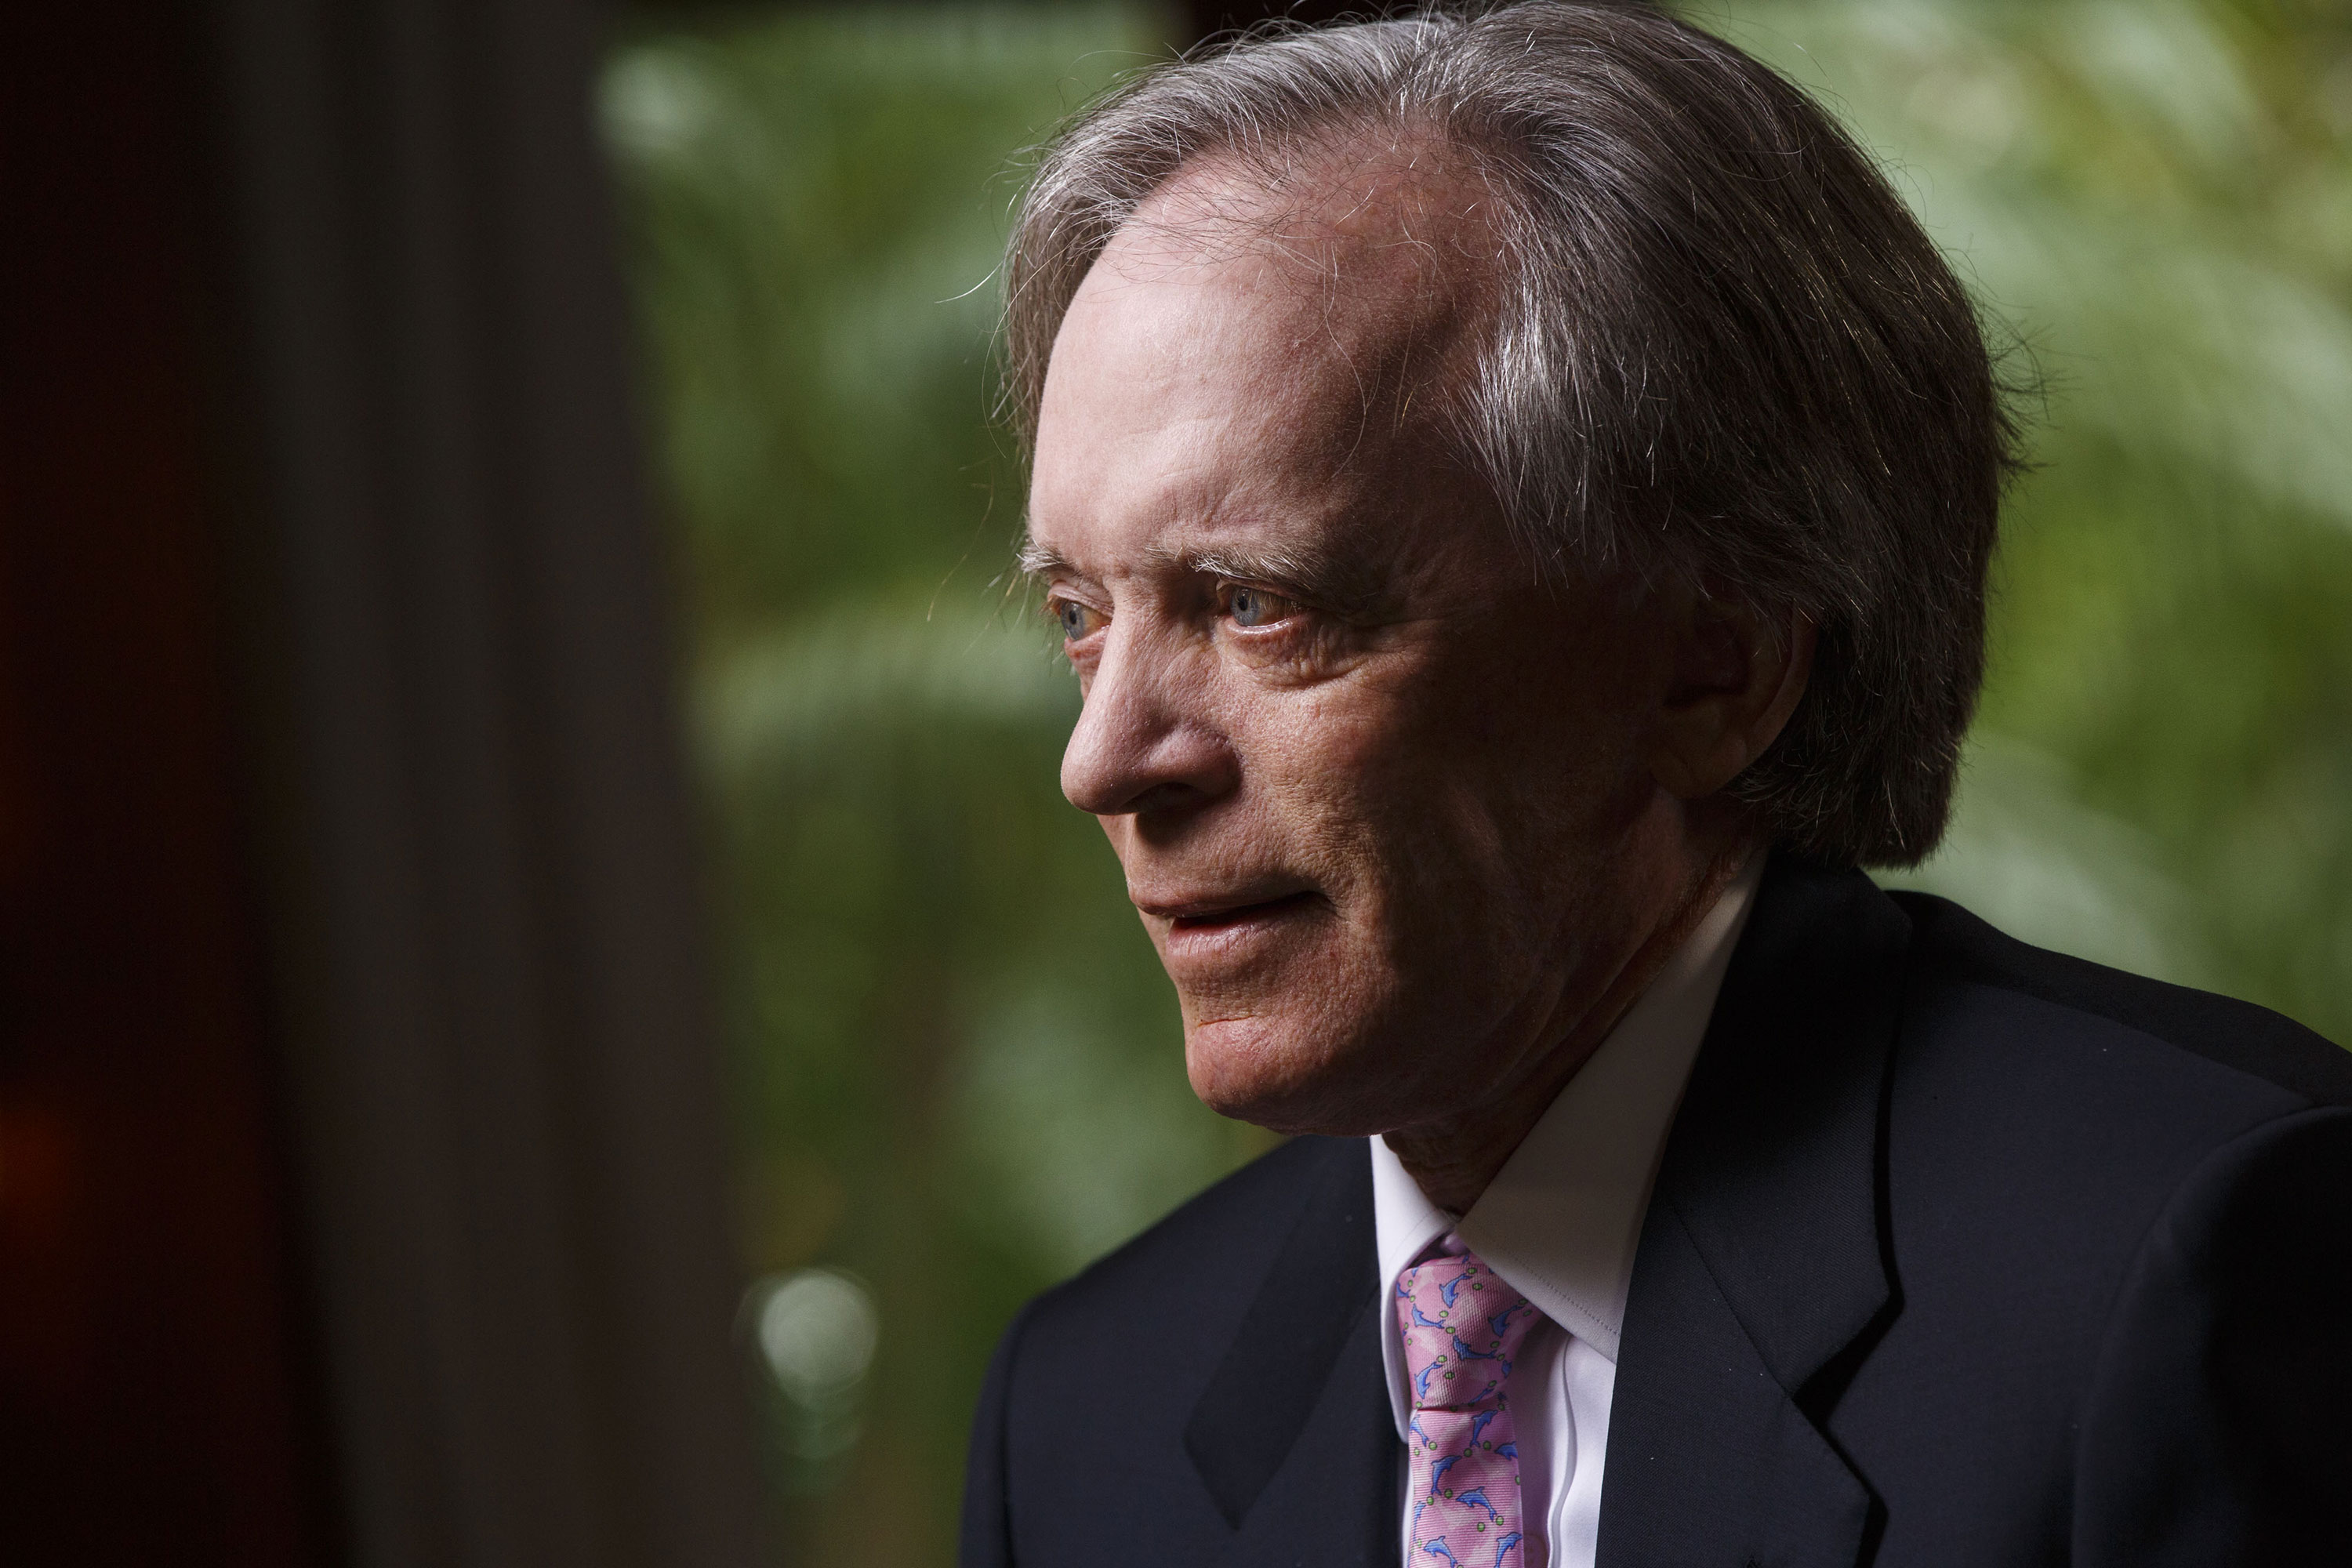 Billionaire Bill Gross accused of blaring 'Gilligan's Island' theme song on loop at his neighbor